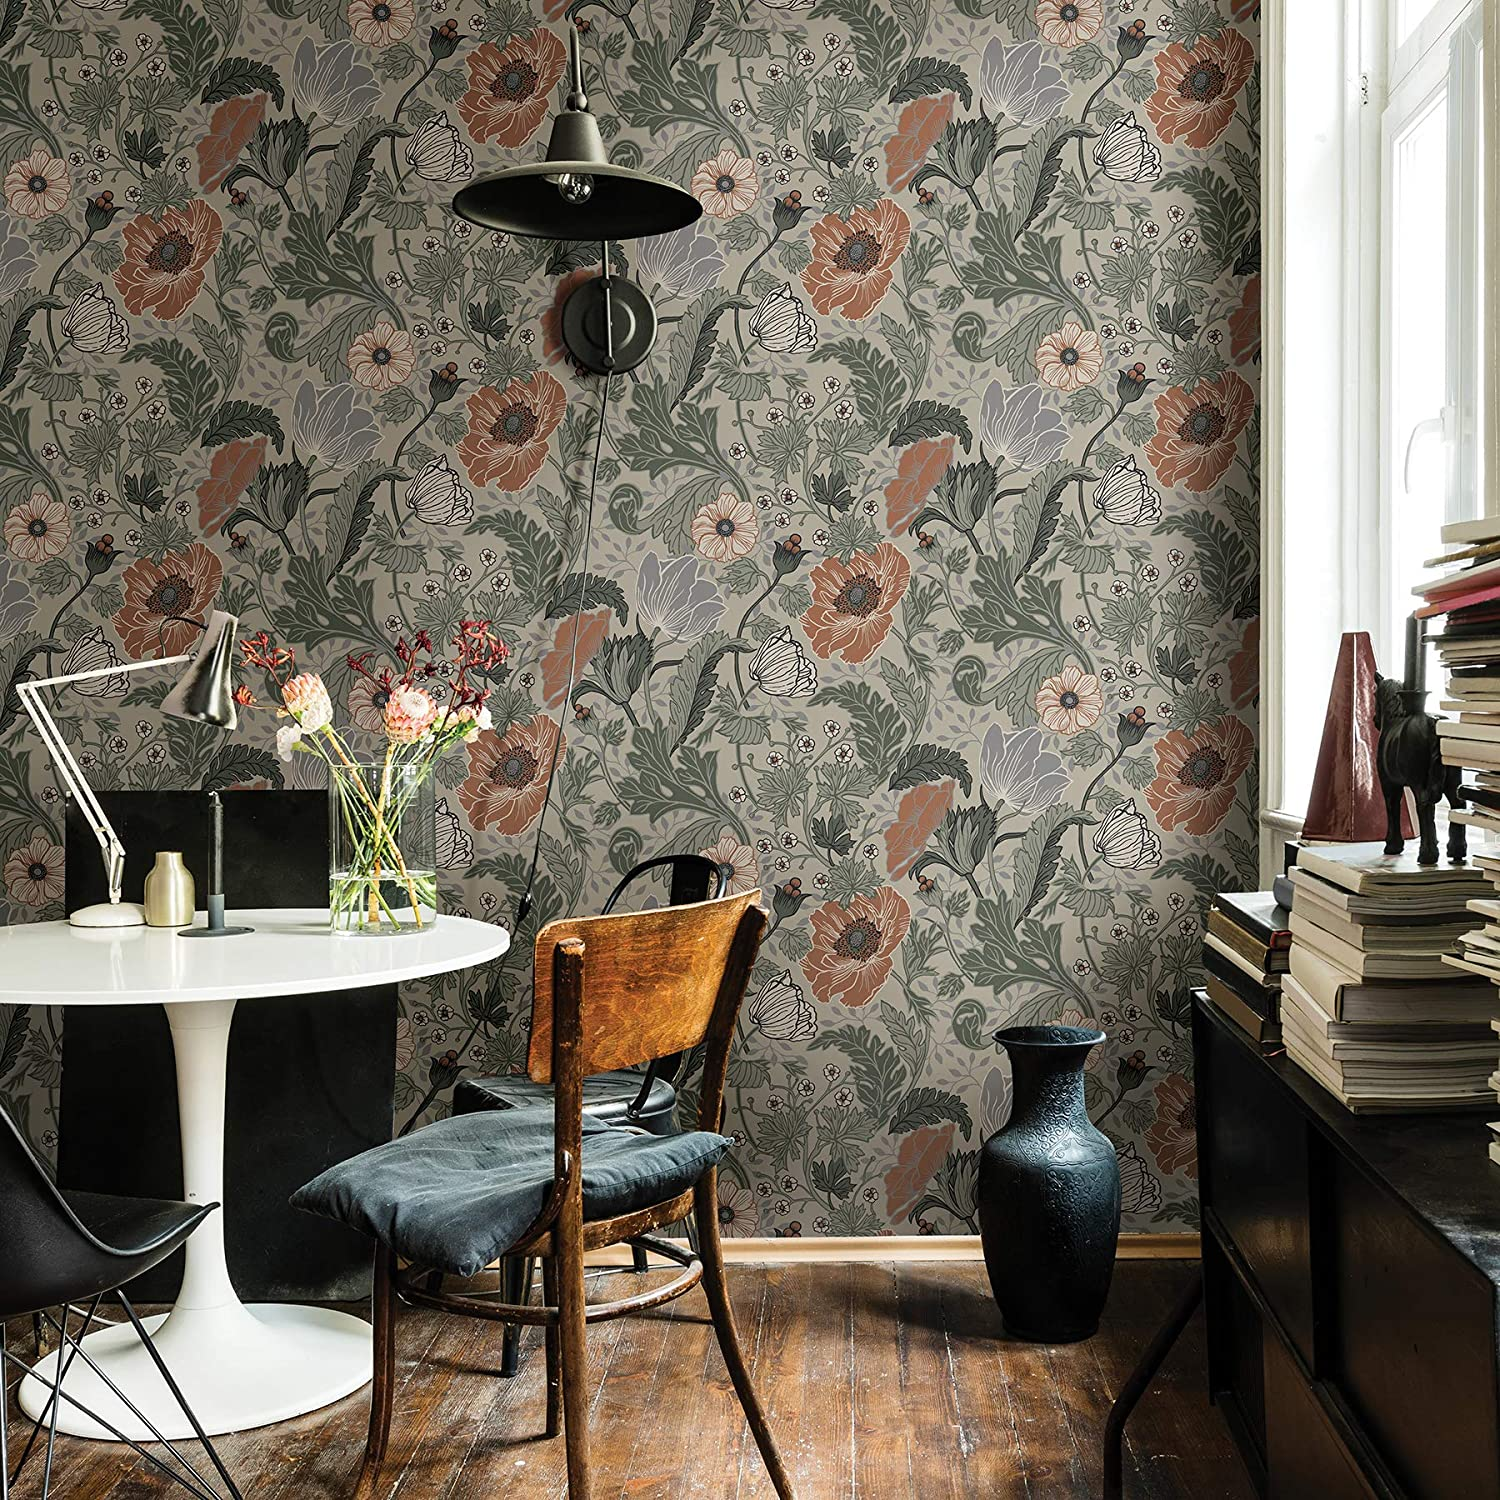 Shop A-Street Prints 2948-33001 Anemone Floral Wallpaper, 20.5in by 33ft, Grey from Amazon on Openhaus